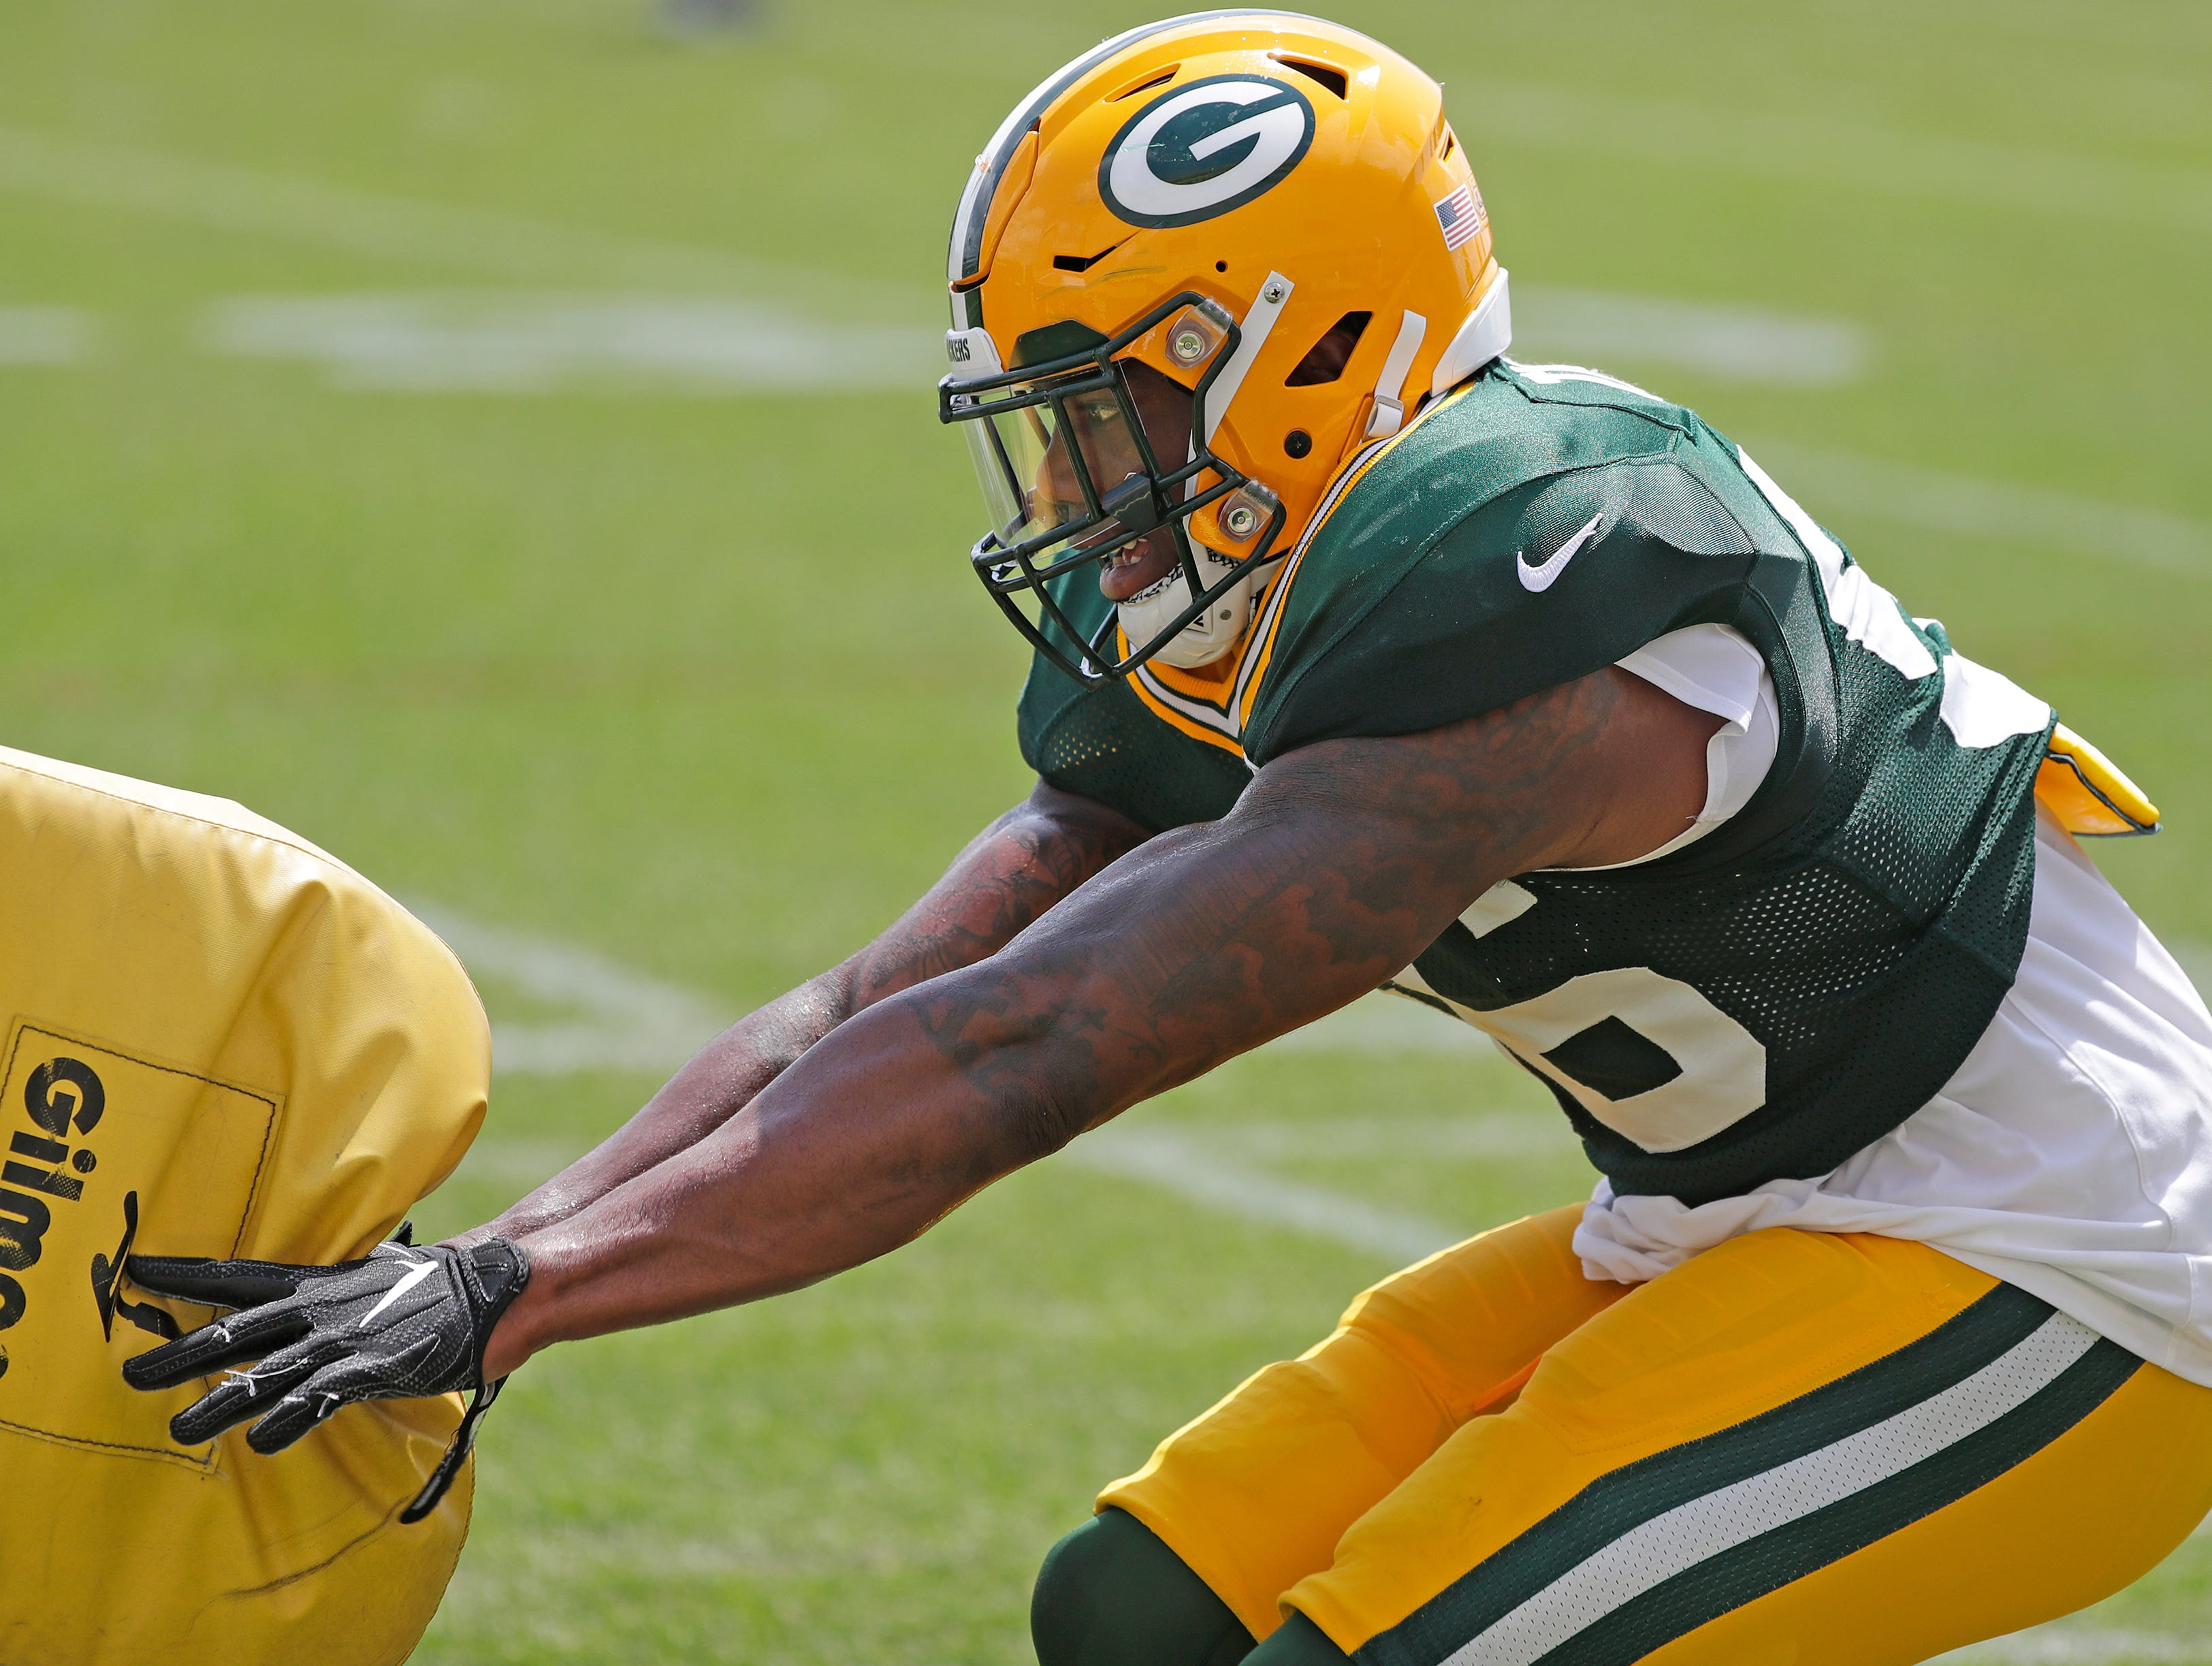 Green Bay Packers linebacker Ahmad Thomas (56) runs through a hitting drill during training camp practice at Ray Nitschke Field on Friday, August 3, 2018 in Ashwaubenon, Wis. 